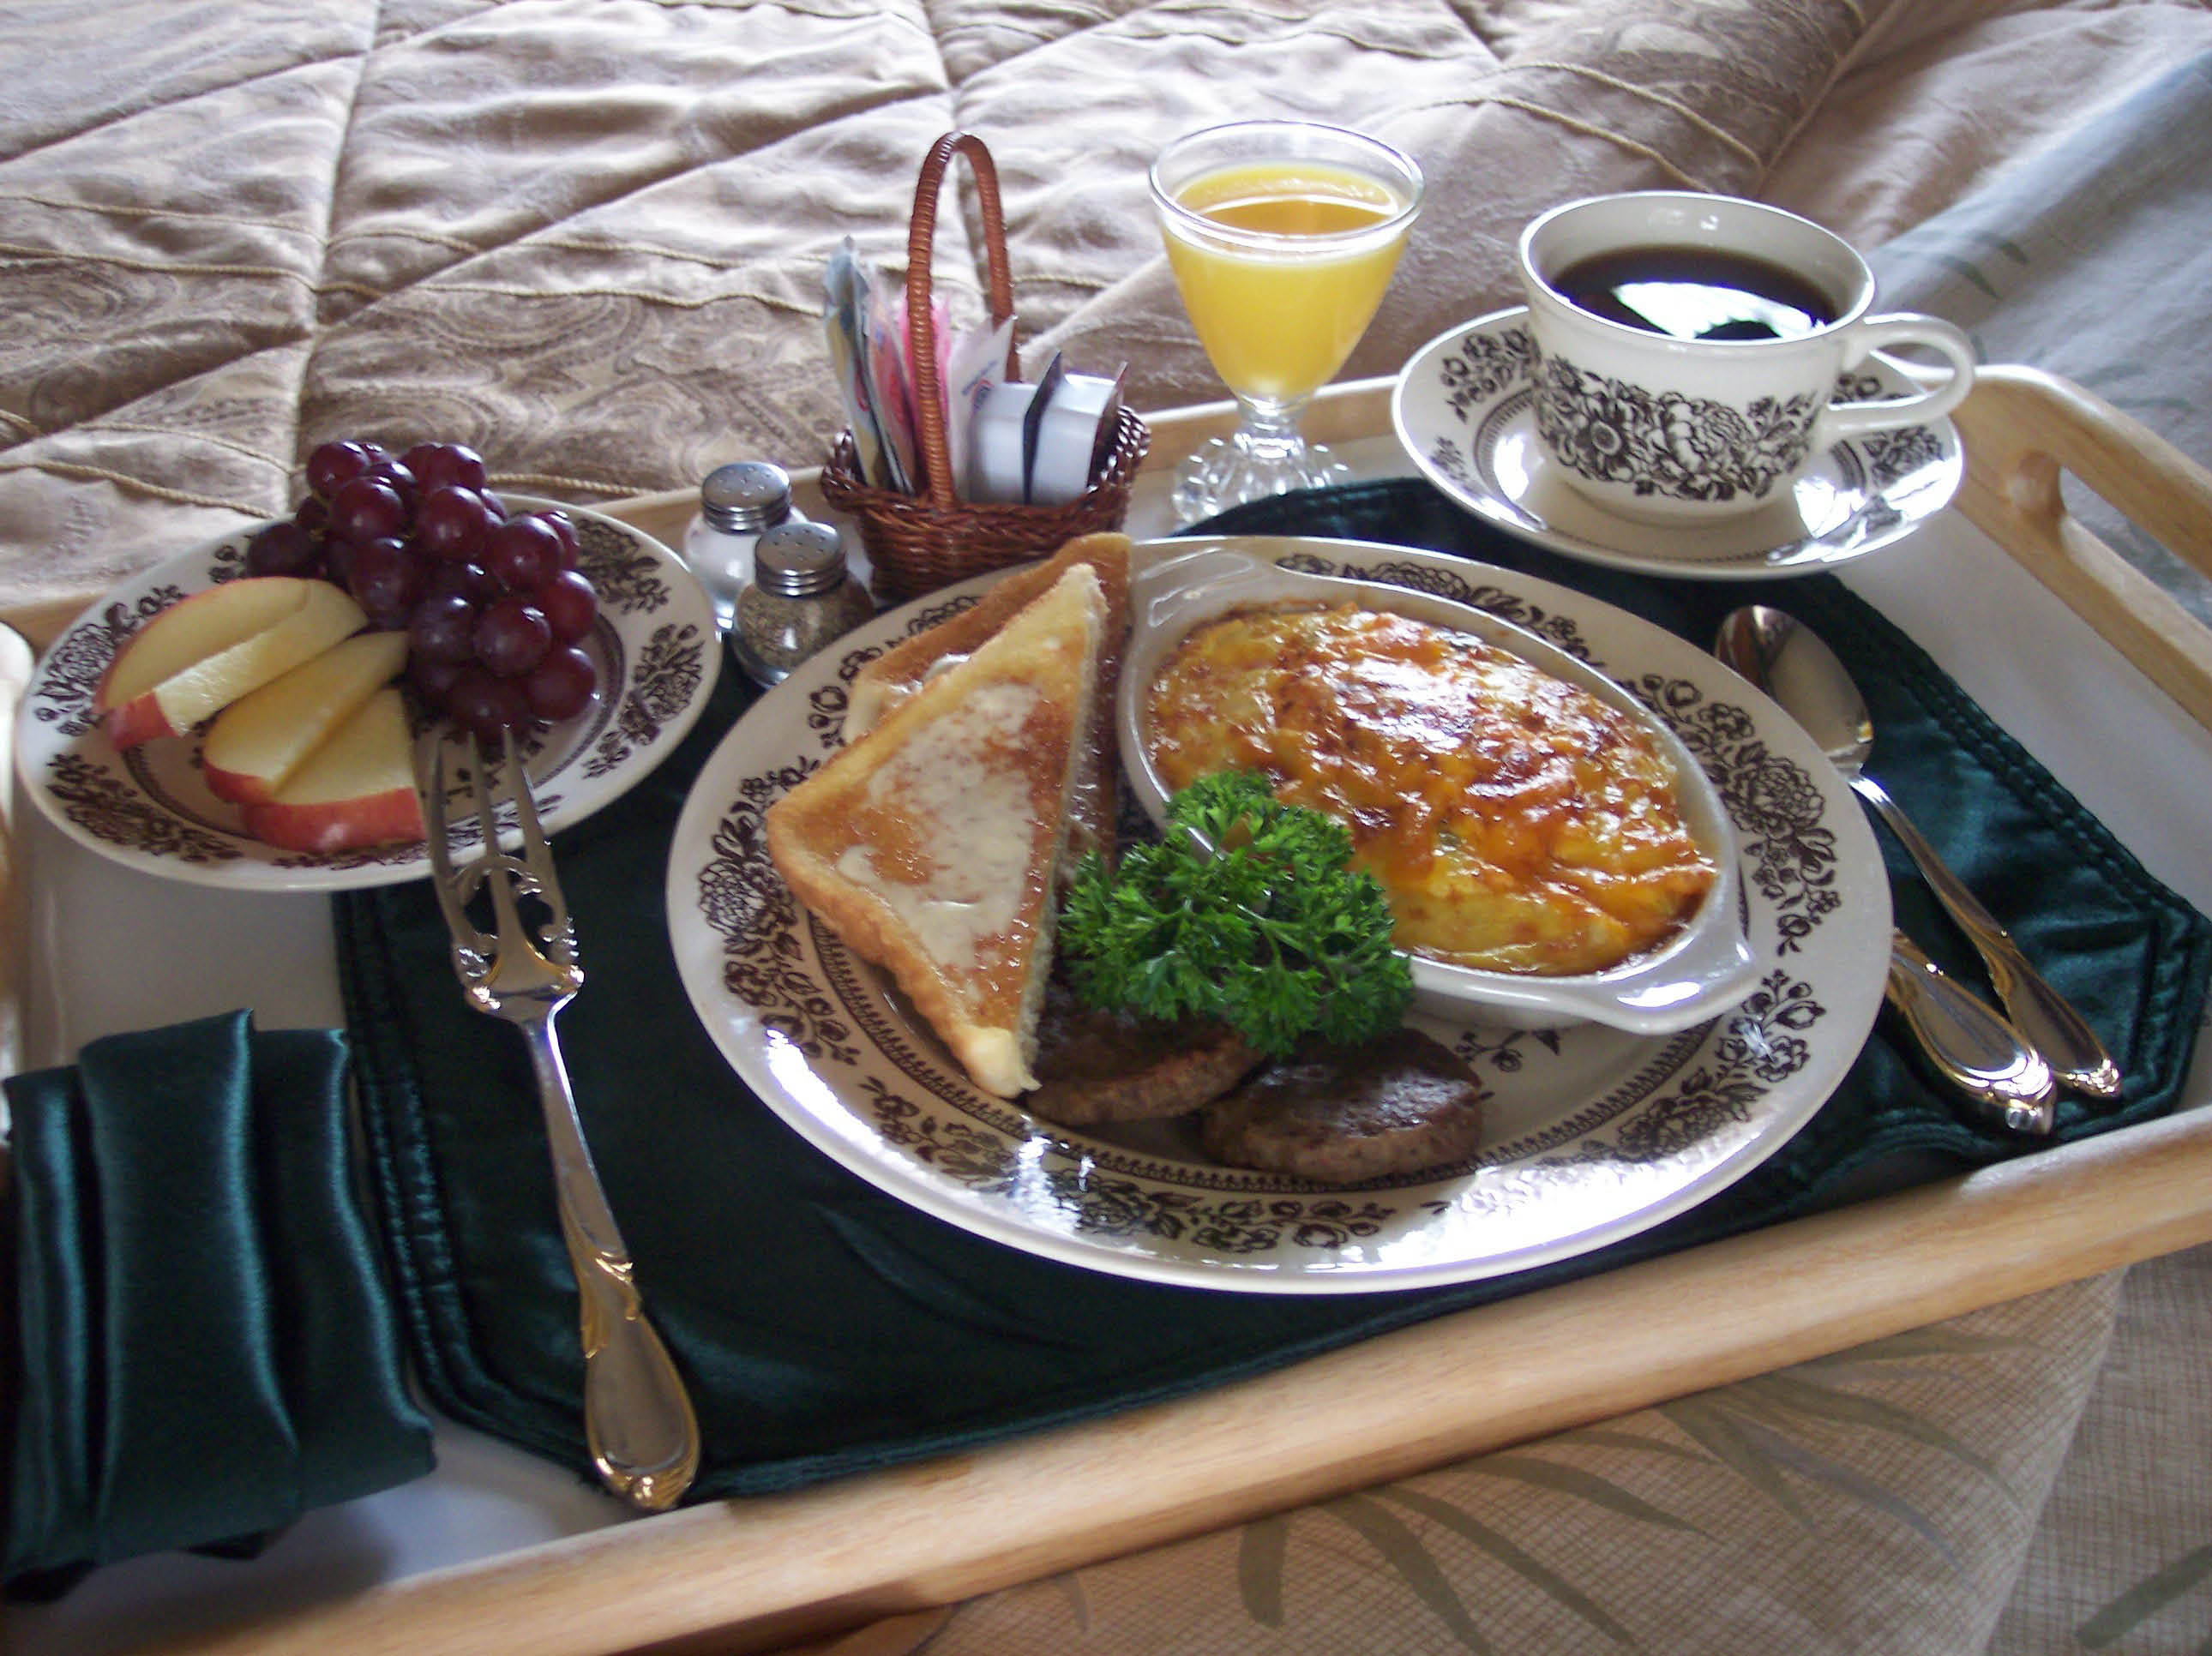 Full breakfast with a choice of entrees, serving times and breakfast in bed!